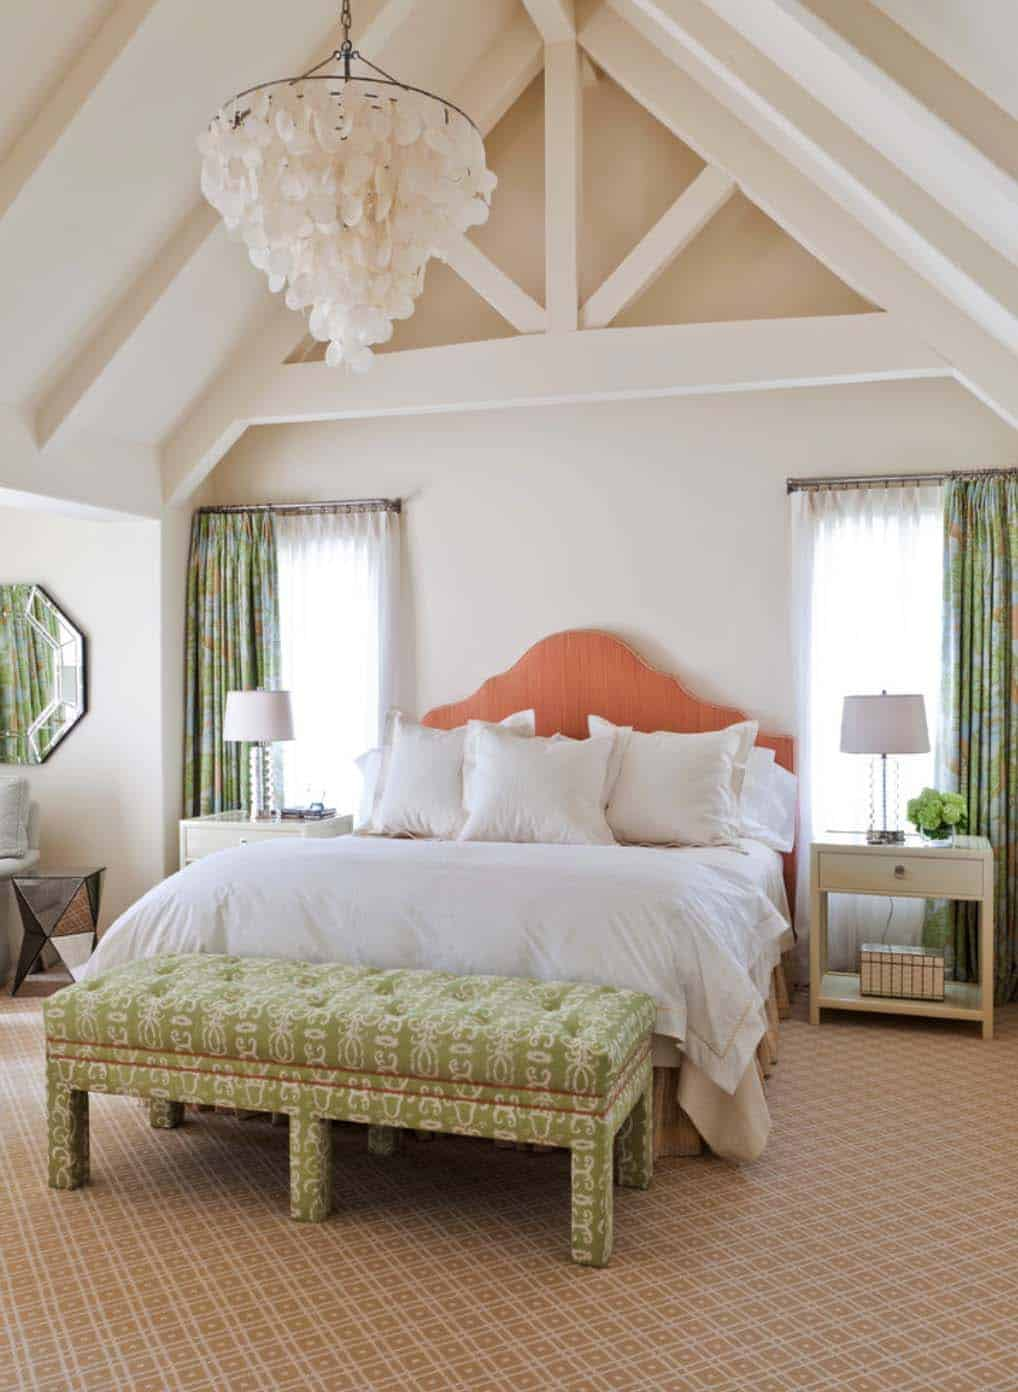 33 stunning master bedroom retreats with vaulted ceilings 16139 | master bedroom vaulted ceiling 32 1 kindesign